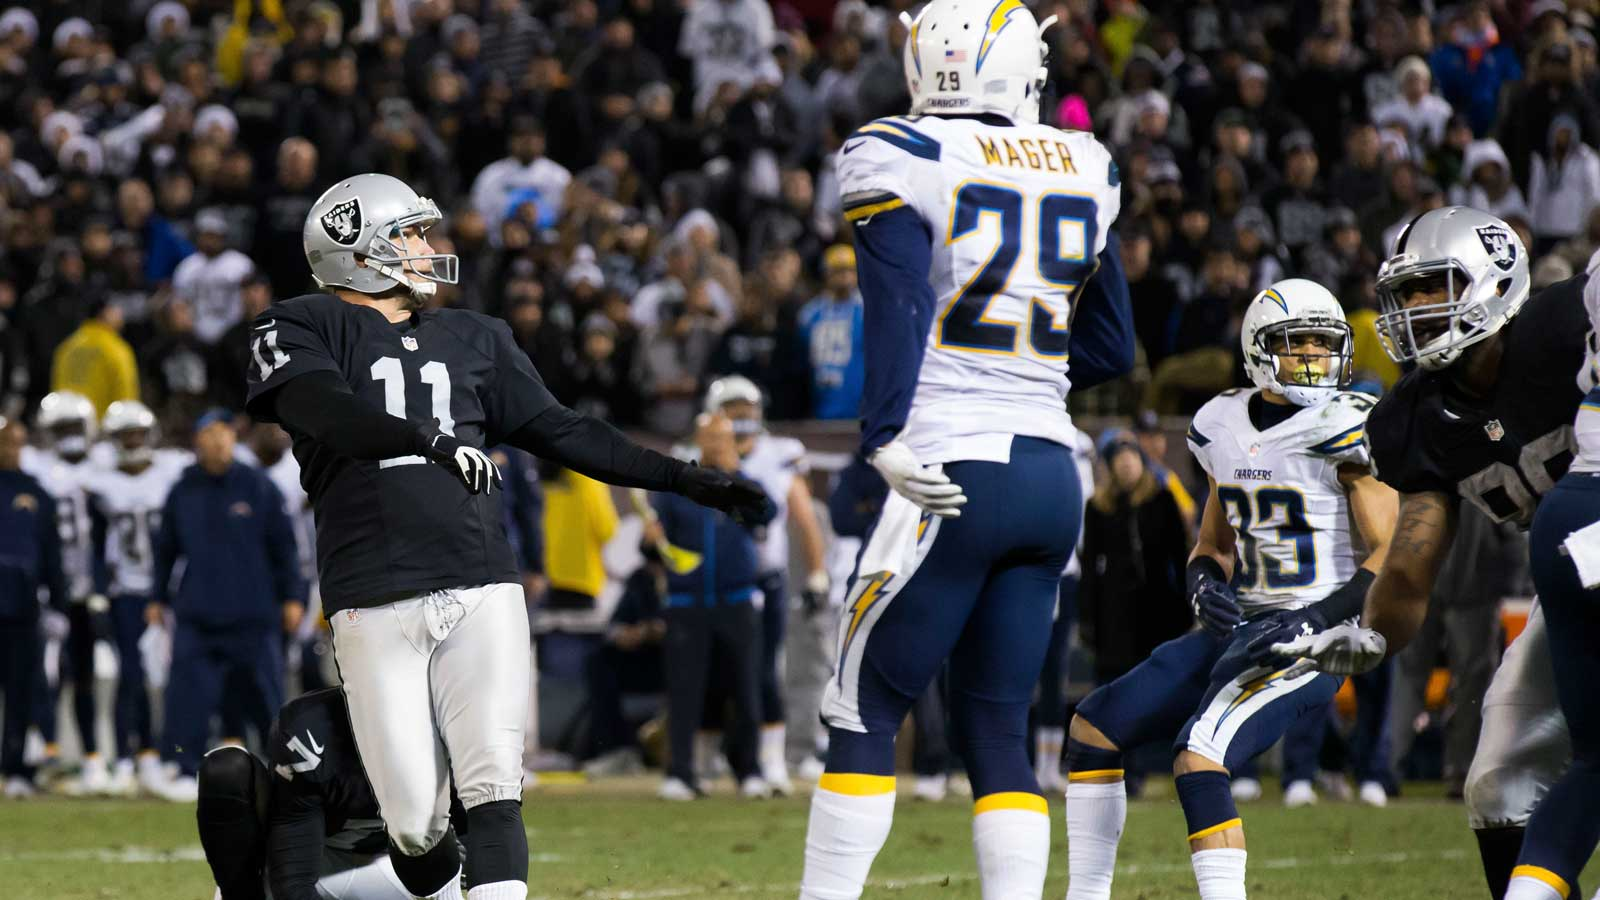 Raiders beat Chargers 23-20 in OT in possible Oakland finale